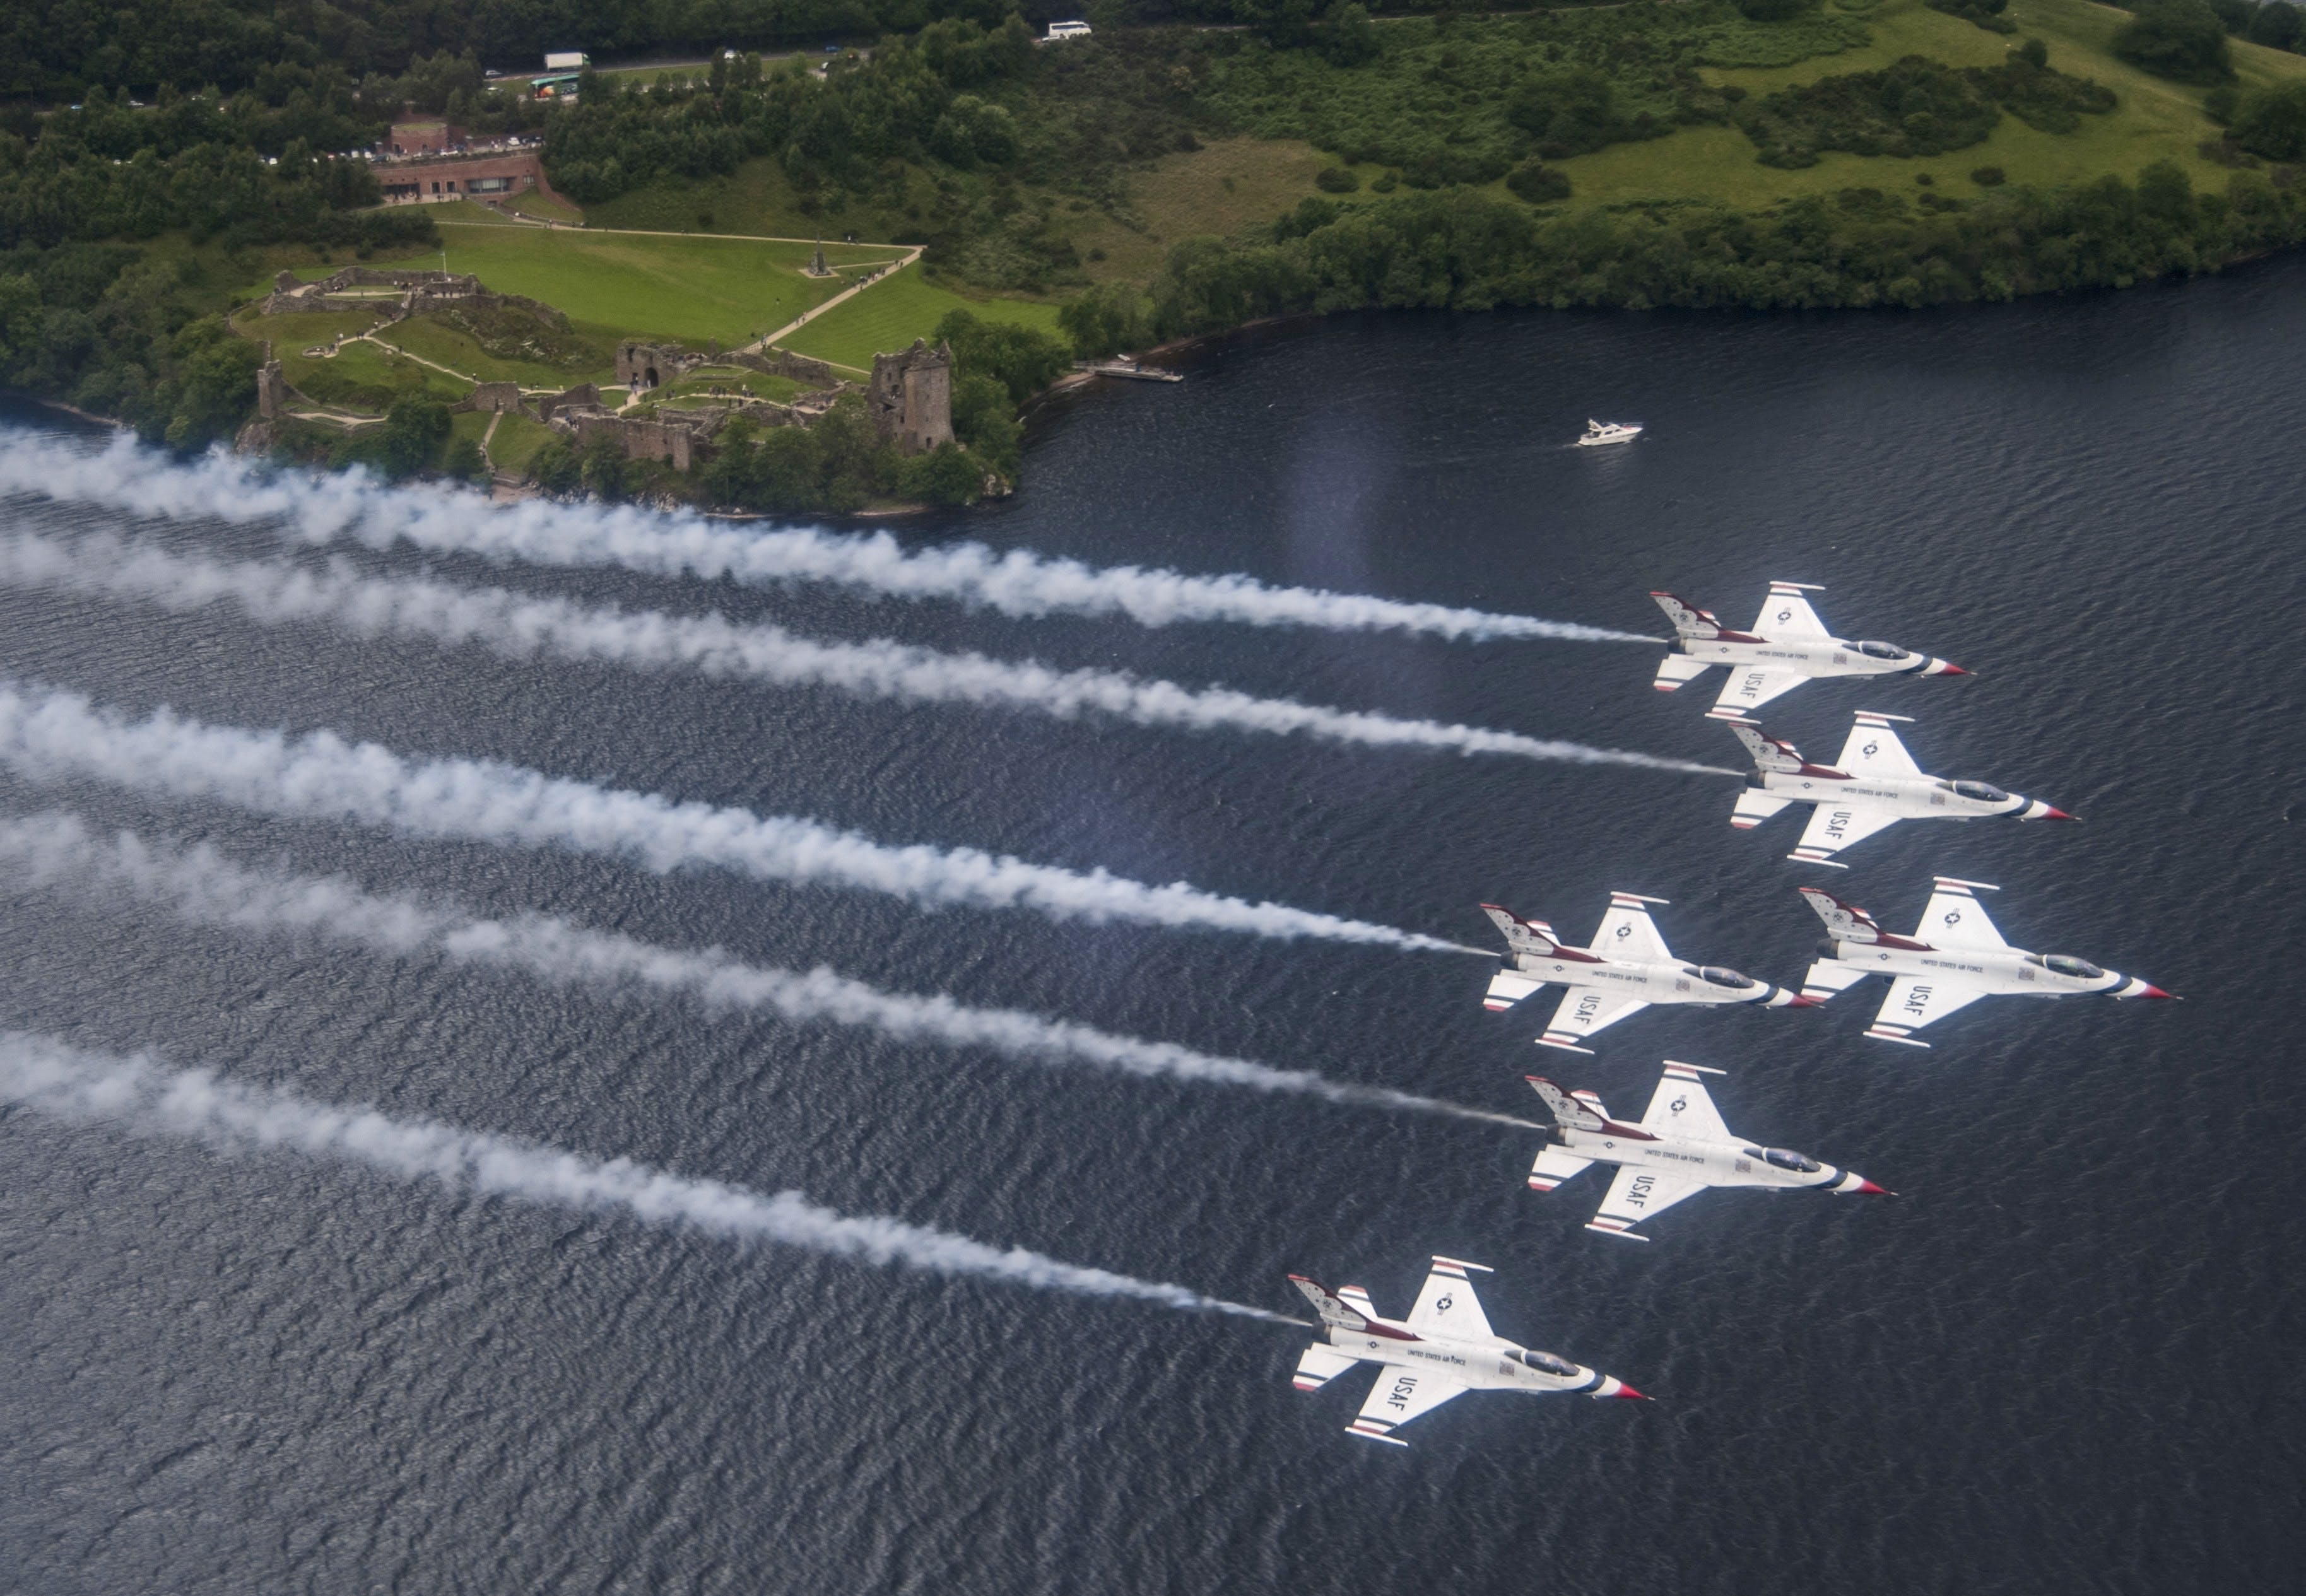 Thunderbirds take to the skies of England and Scotland in preparation for the Royal International Air Tattoo